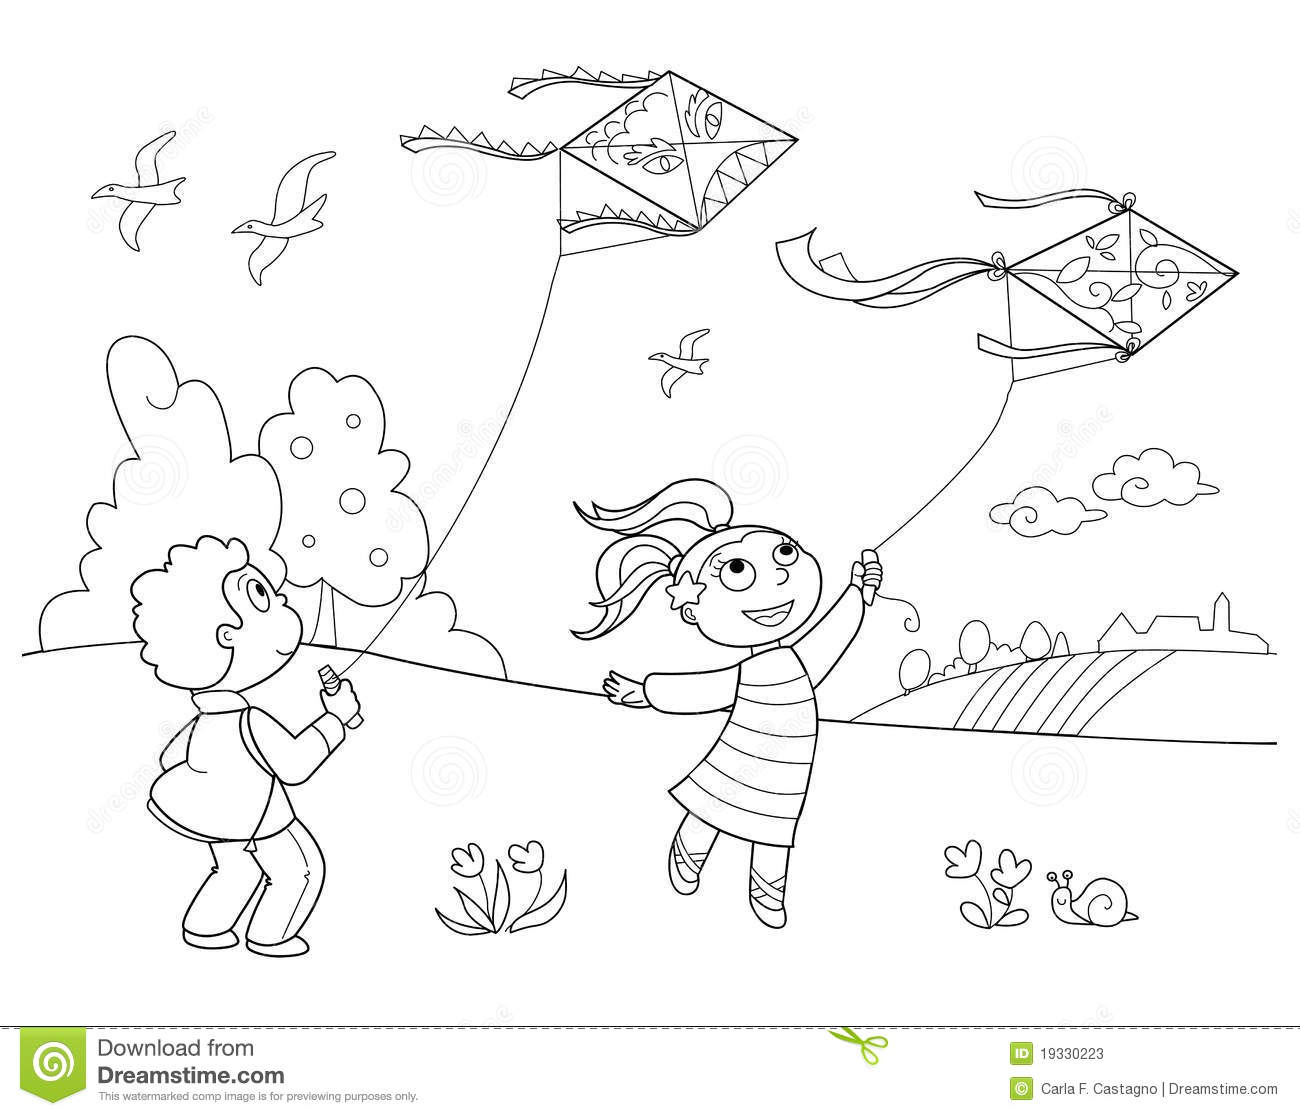 playing with kites stock vector. illustration of children - 19330223